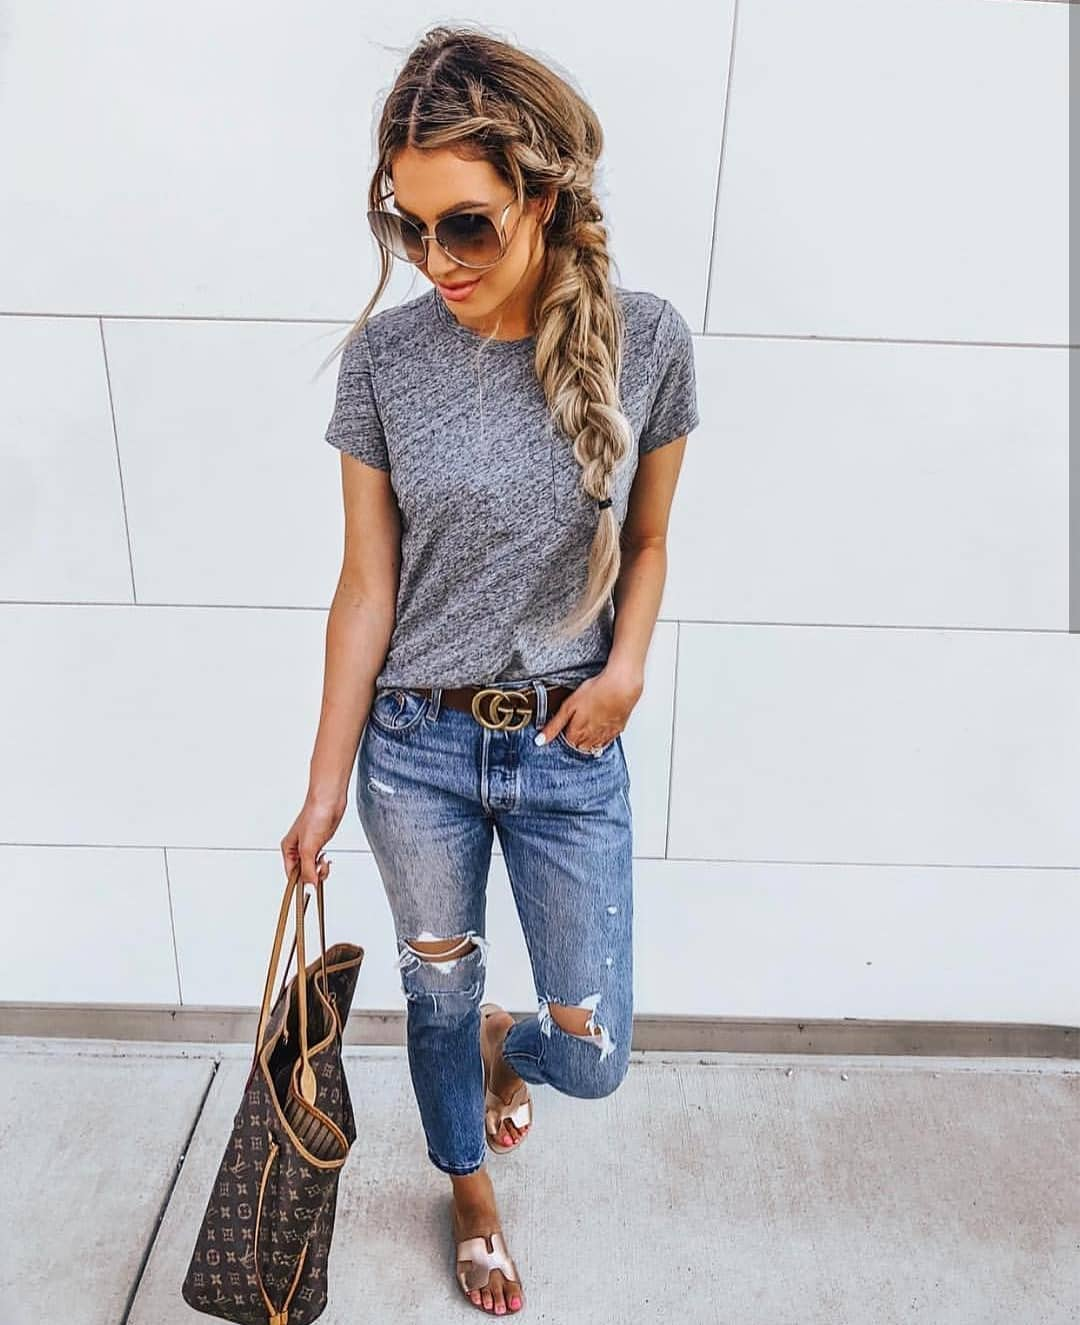 Summer Casual Basics: Grey T-Shirt, Ripped Jeans And Matte Bronze Sandals 2019